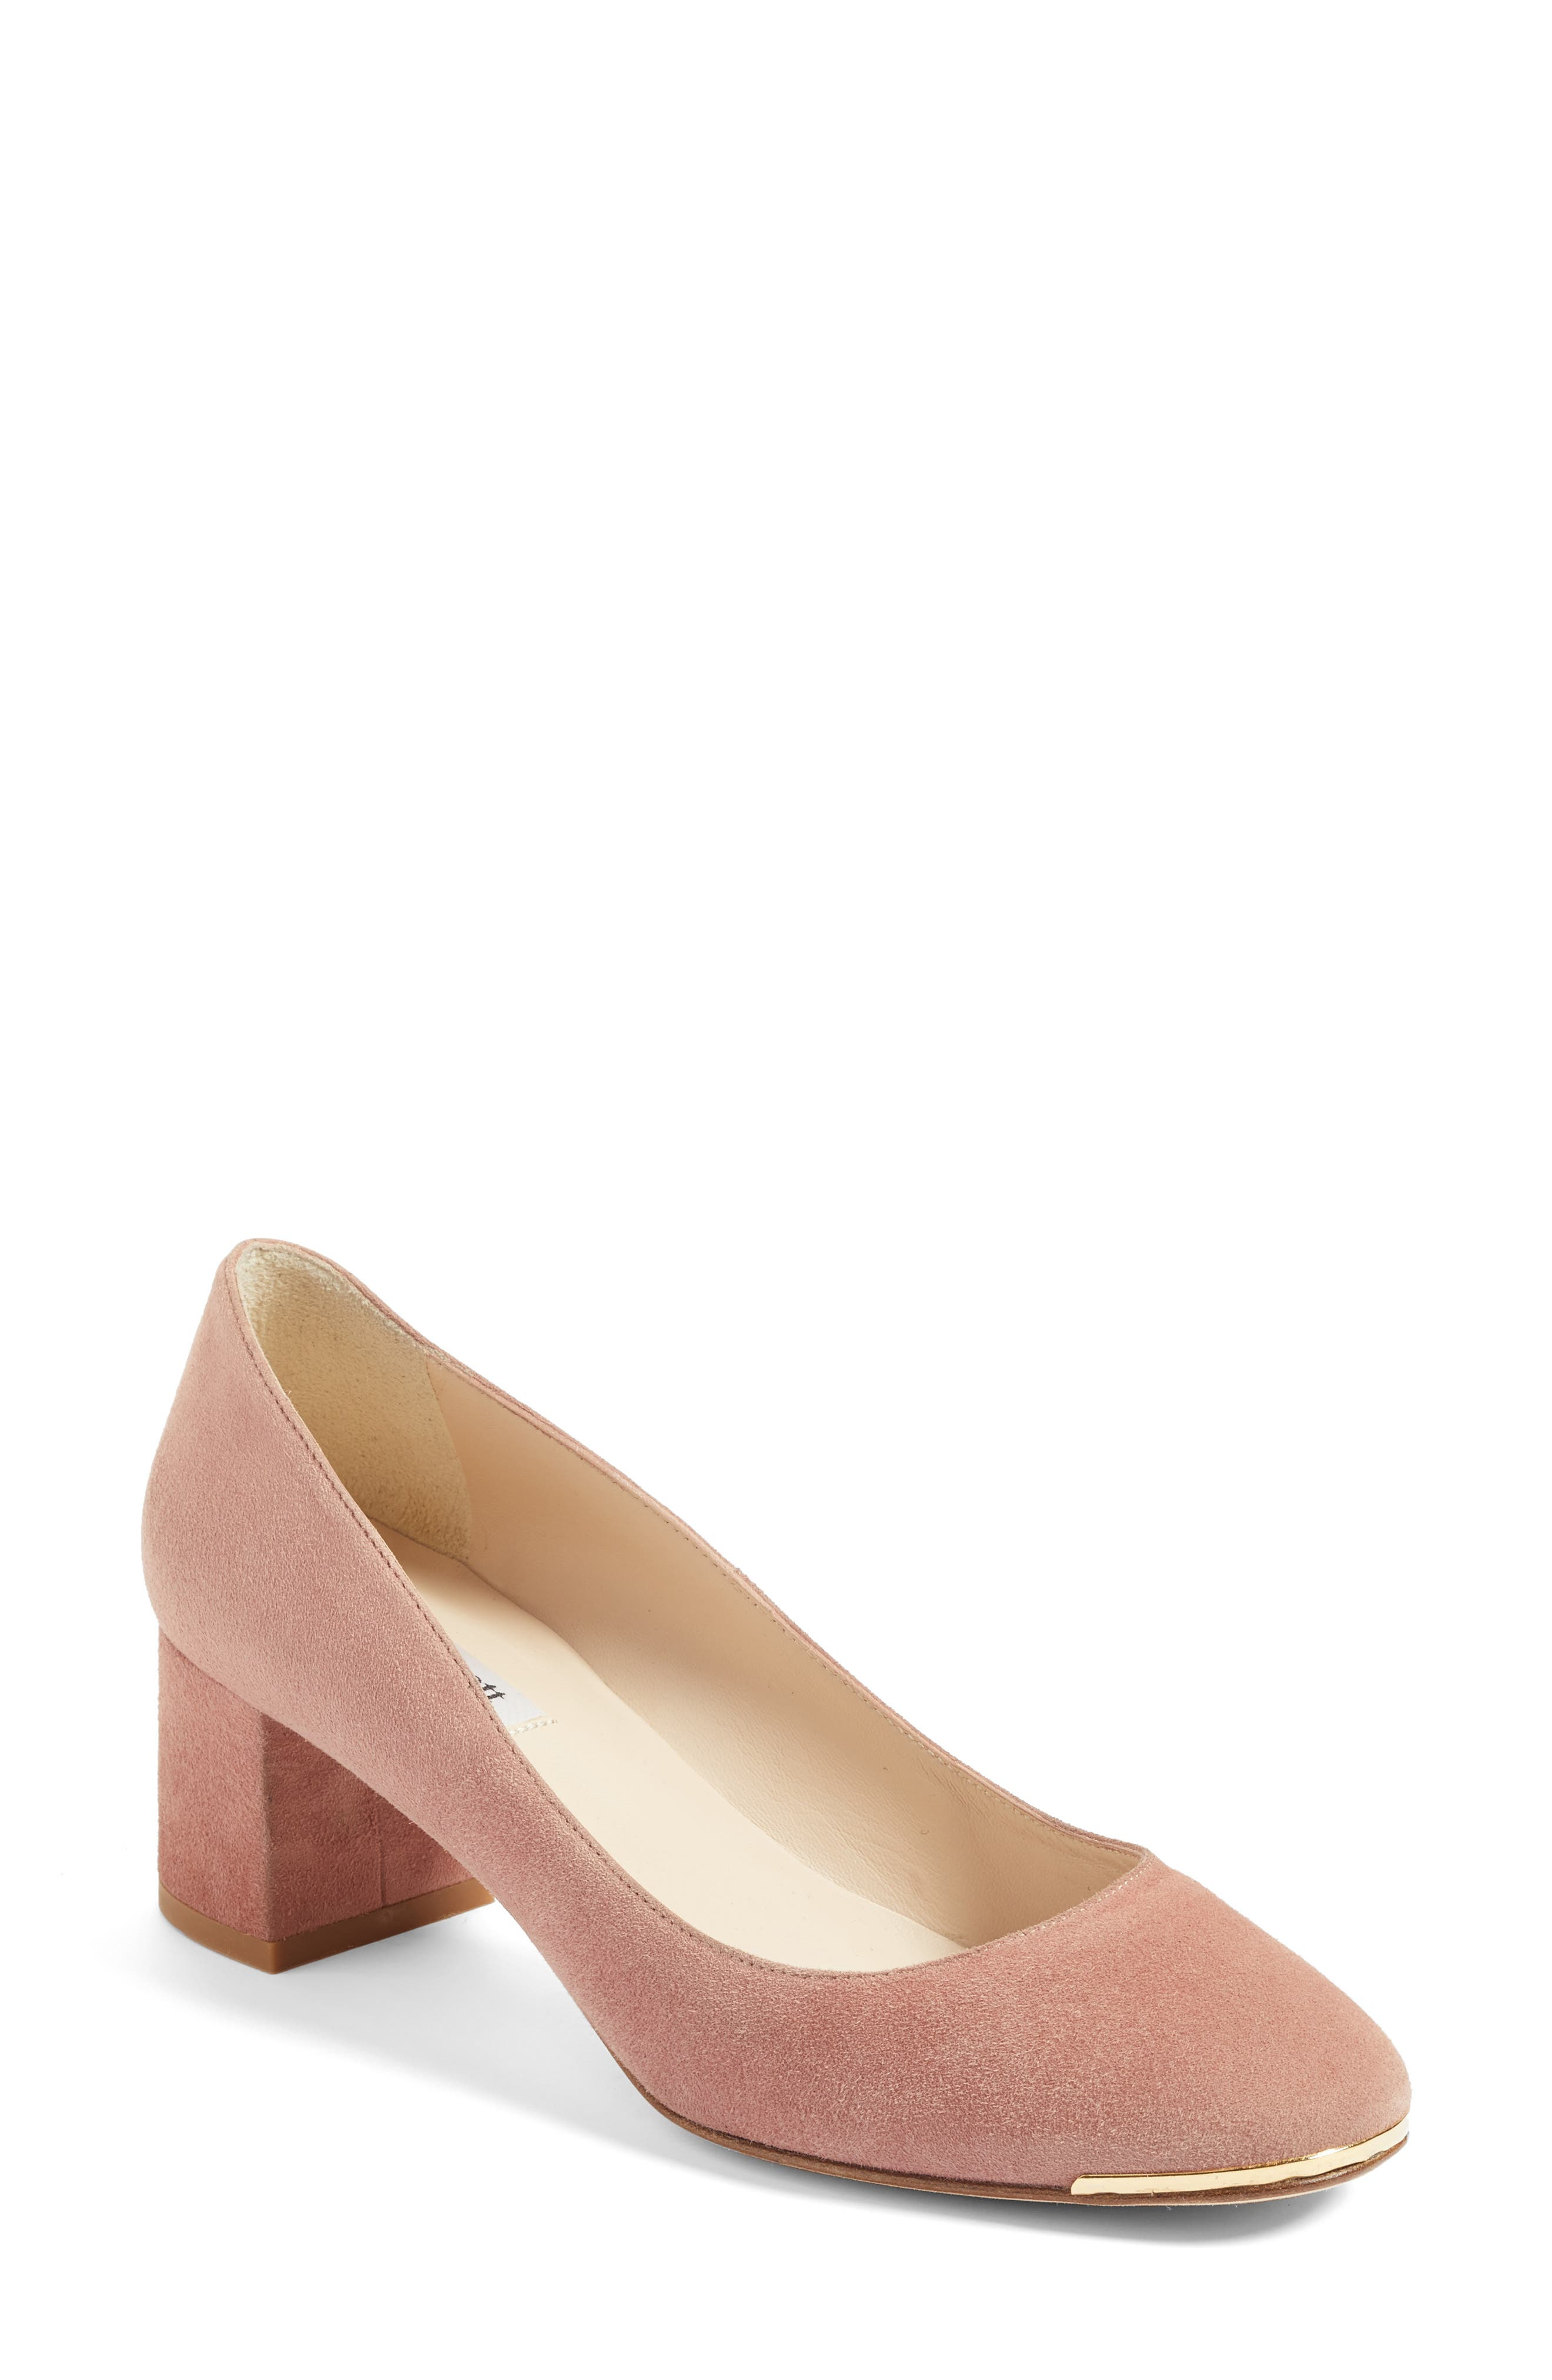 Clemence Pump,                         Main,                         color, Pink/ Dark Pink